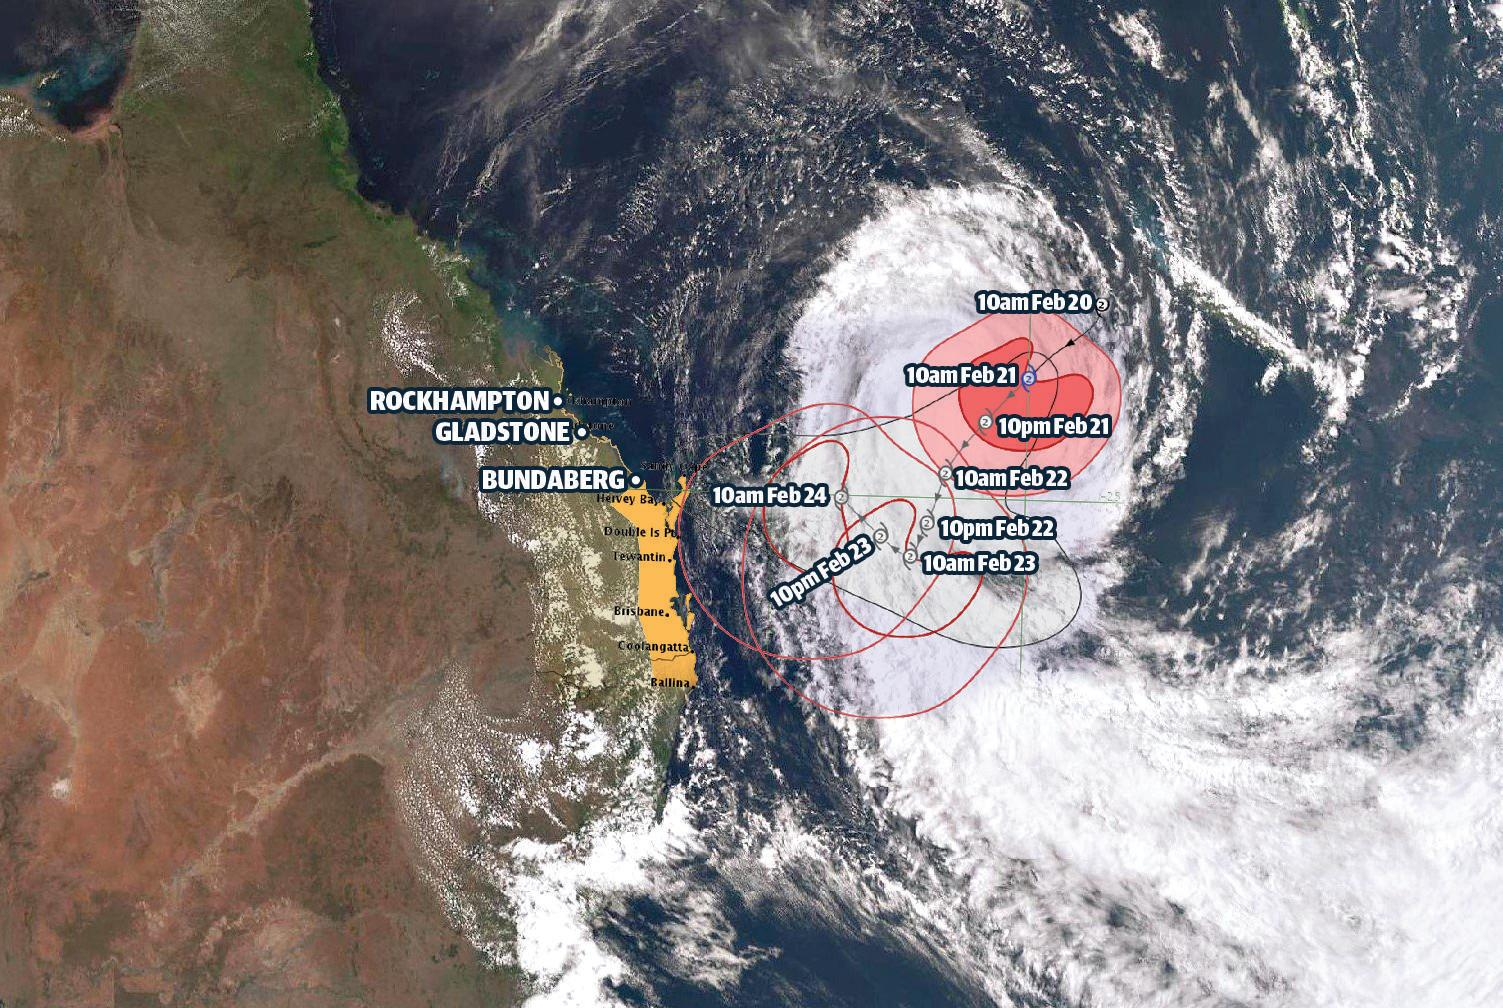 Bureau of Meteorology satellite image shows cyclone Oma moving towards the Queensland coast on Thursday.